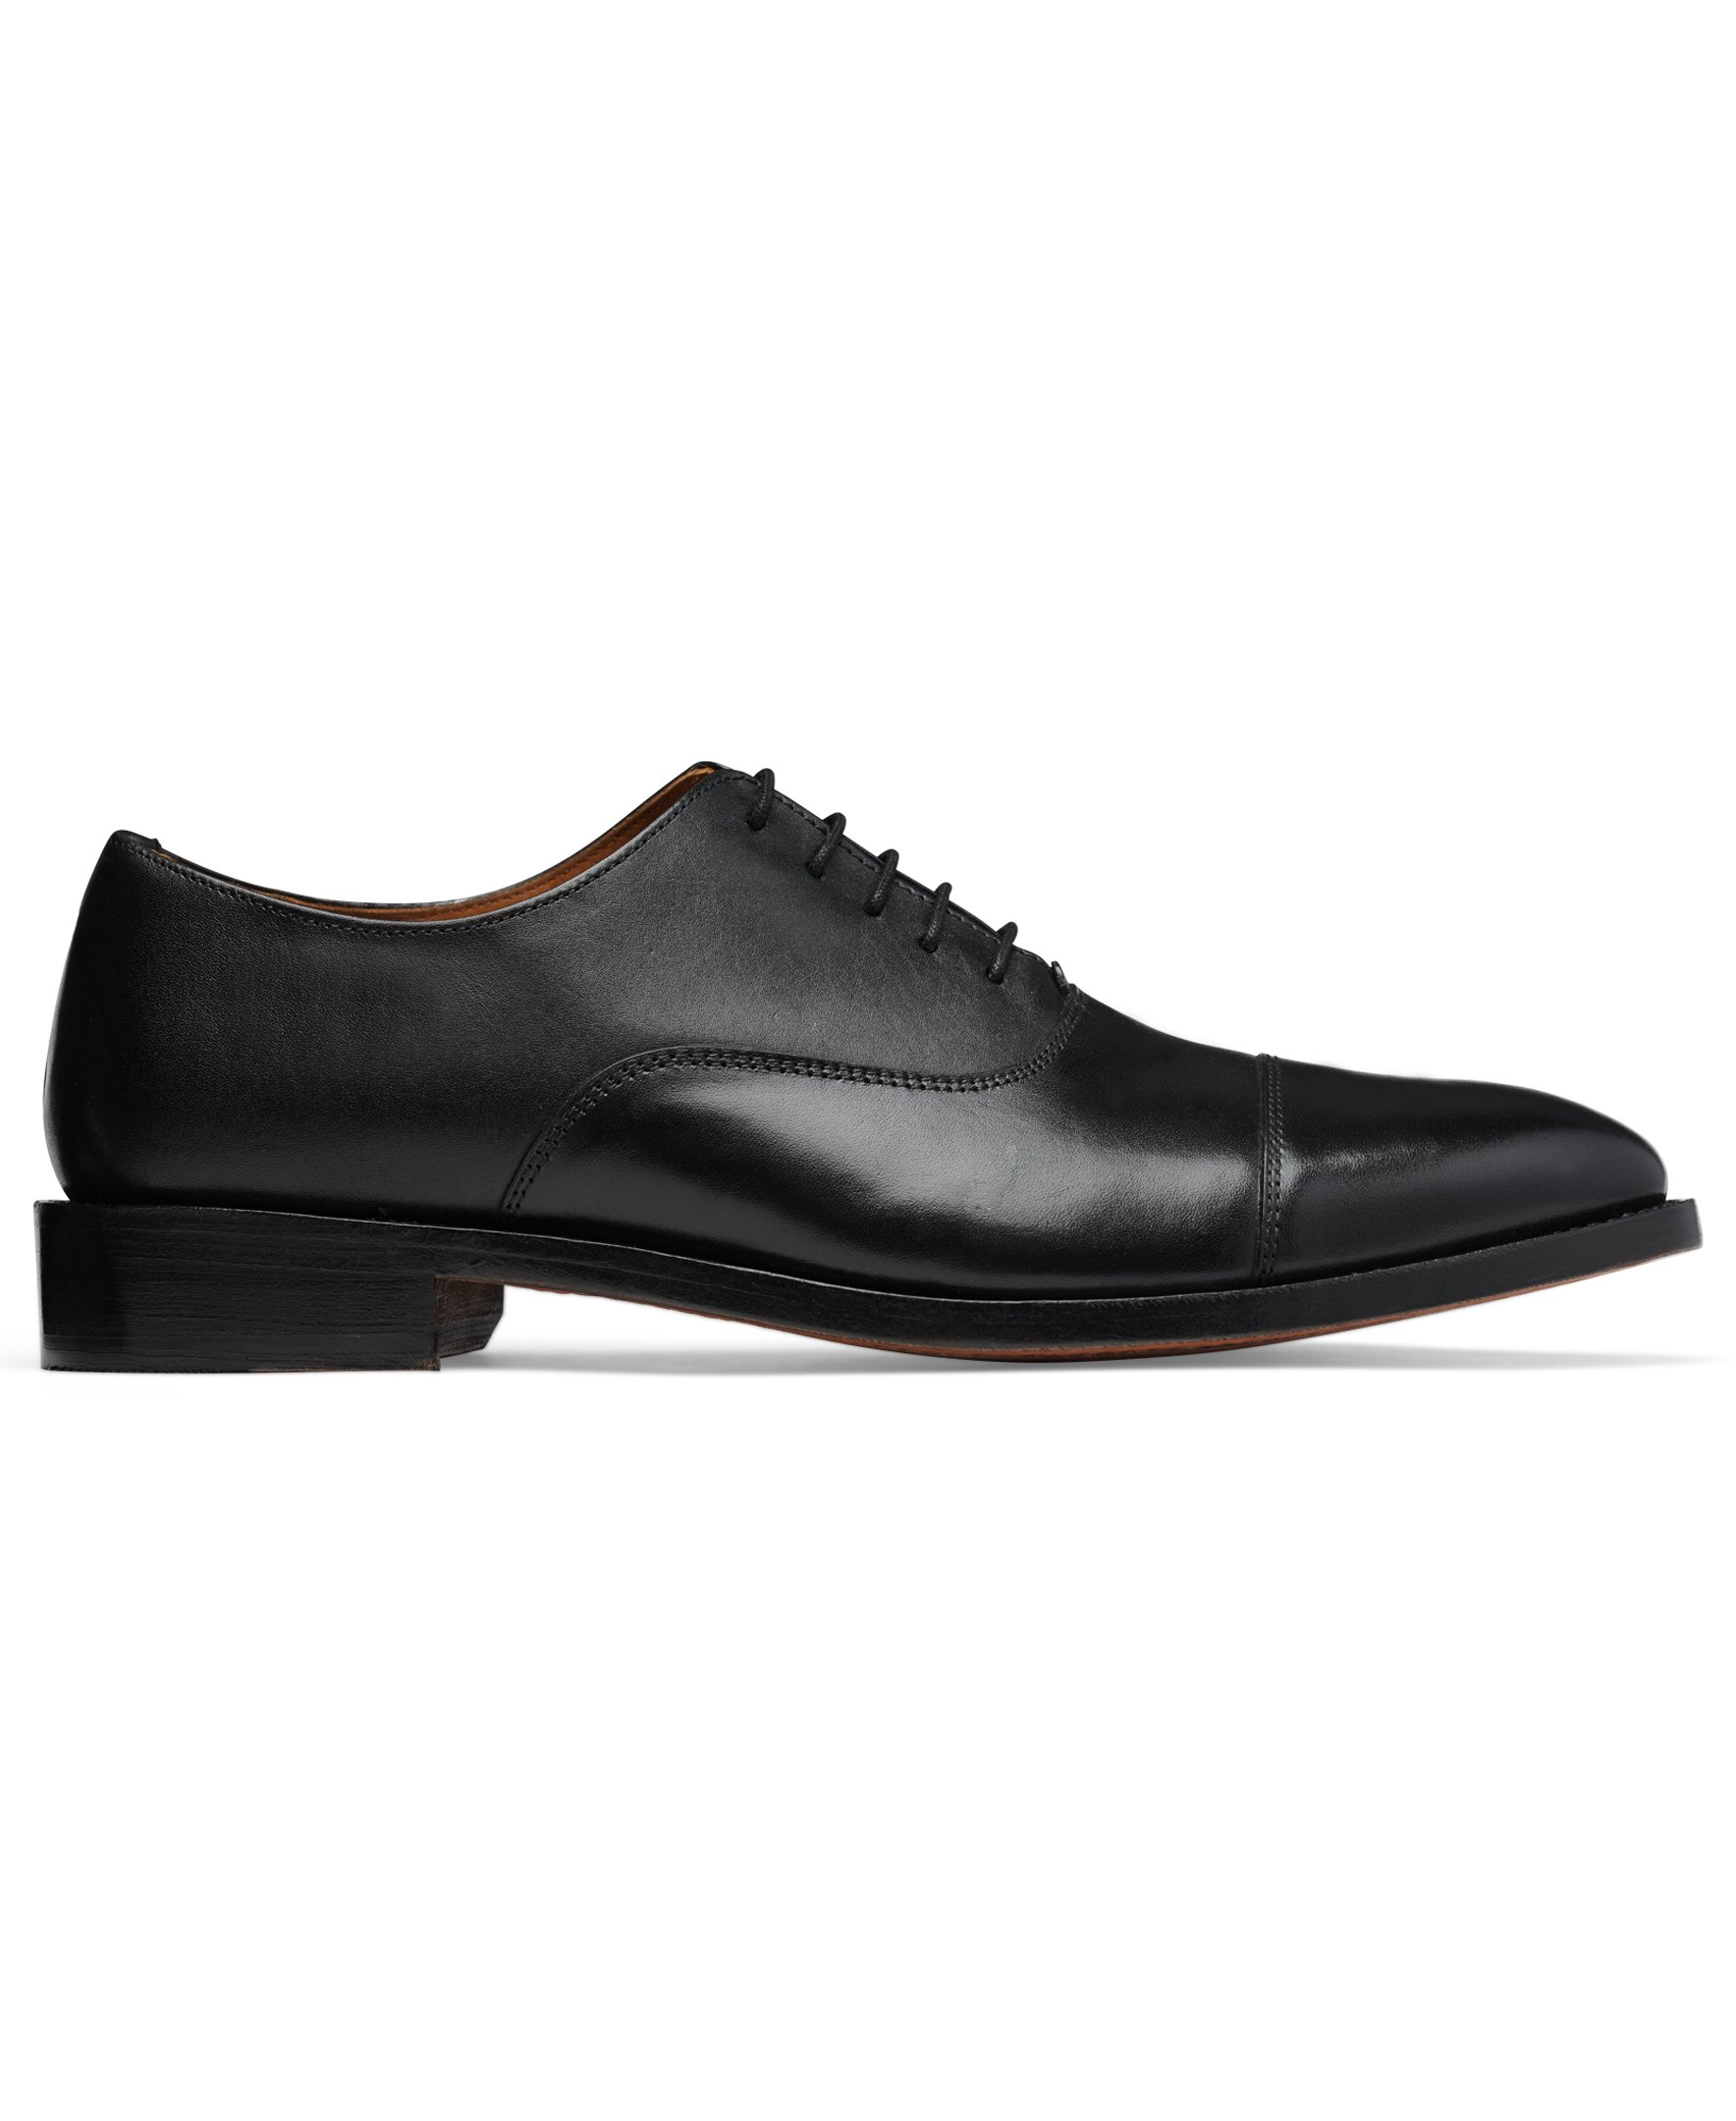 Anthony Veer Mens Clinton Cap-toe Oxford Leather Shoe in Goodyear Welted Construction (10.5 D, Black) by Anthony Veer (Image #3)